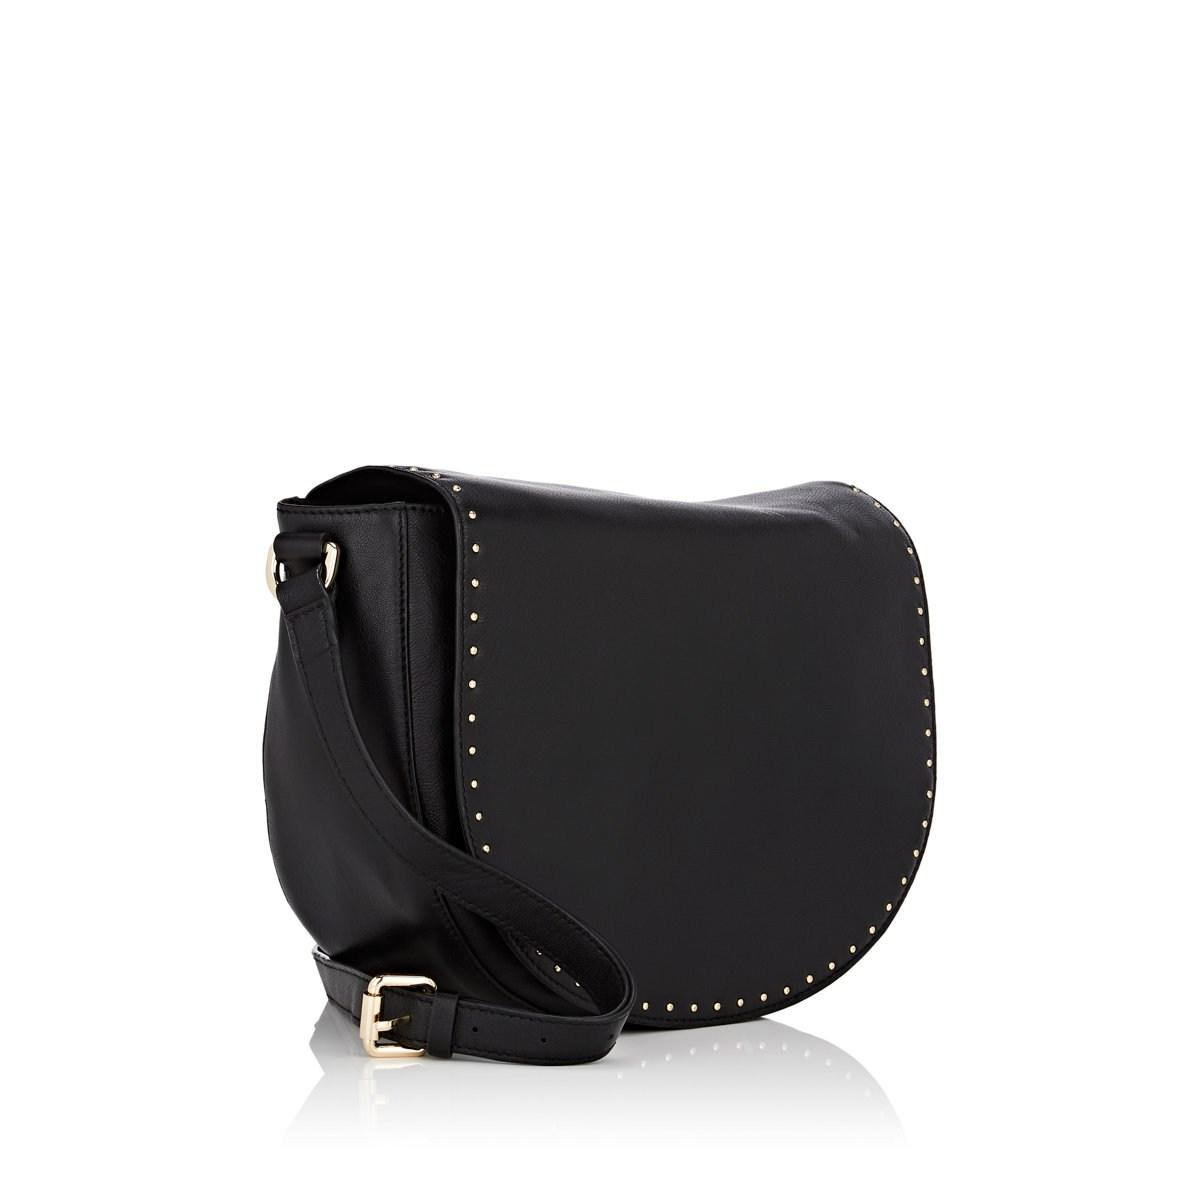 19bd36451bf5f9 Barneys New York - Black Studded Leather Saddle Bag - Lyst. View fullscreen